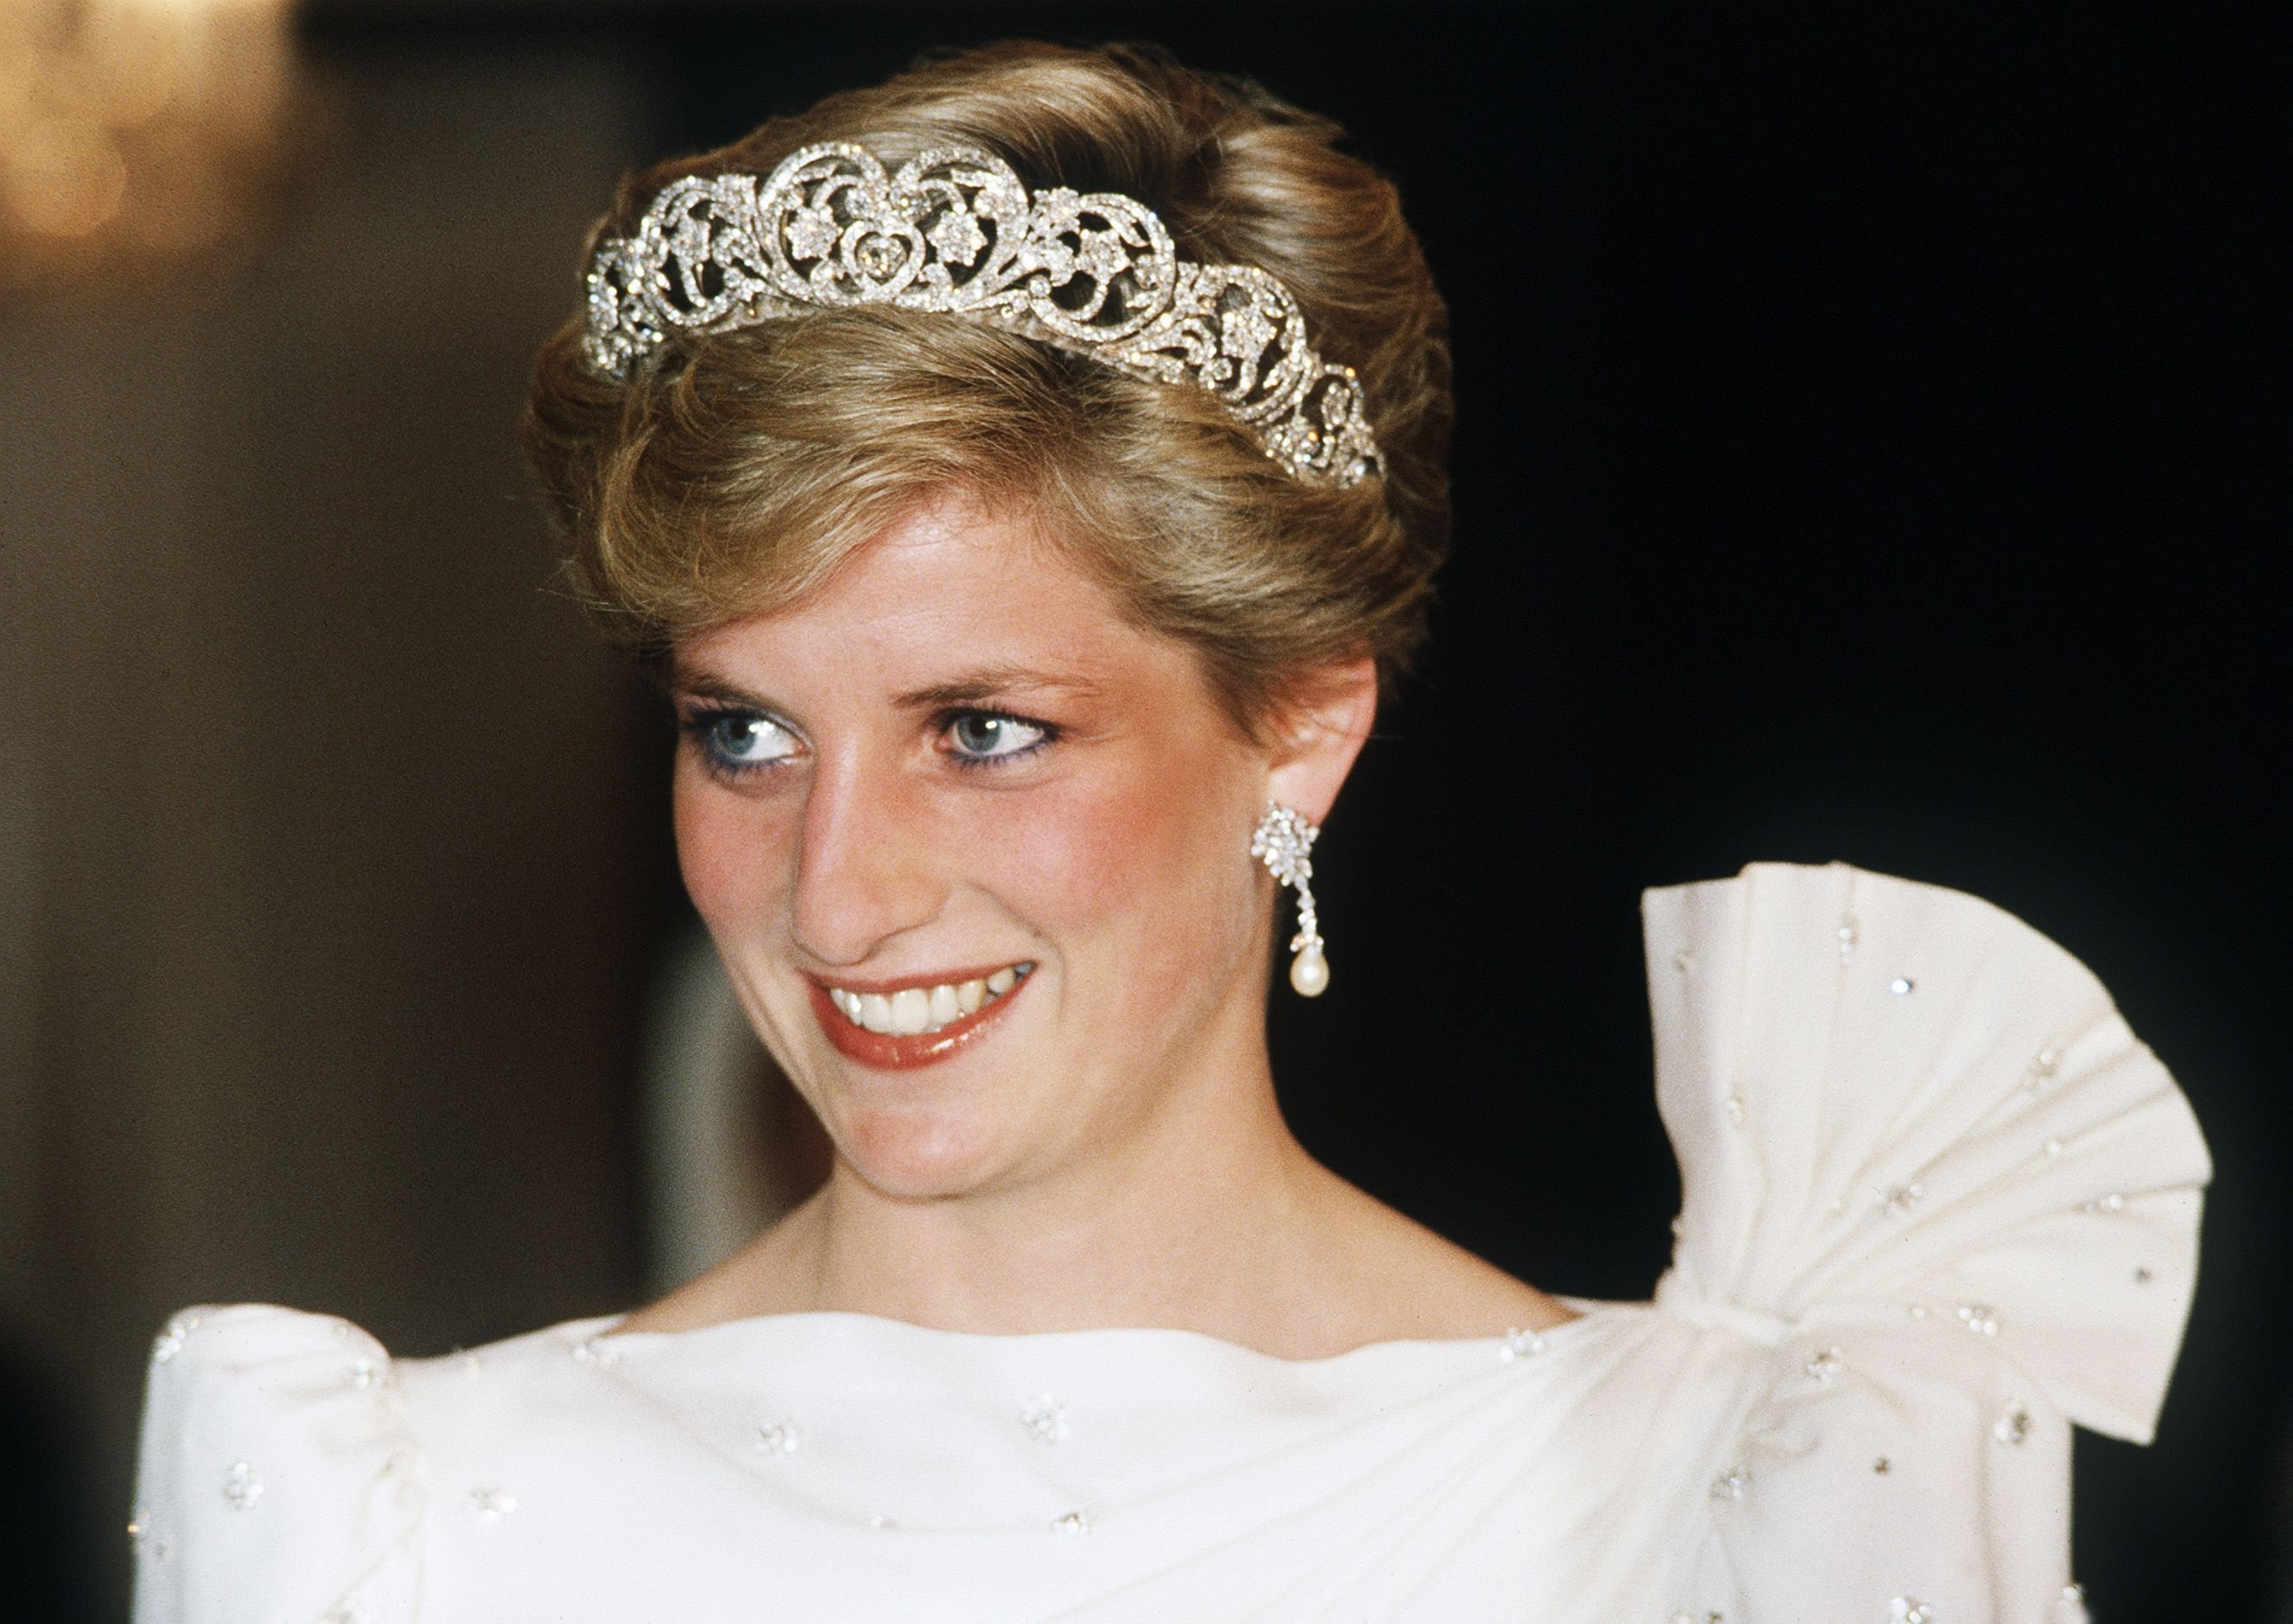 Princess Diana at a State Banquet on November 16, 1986.   Photo: Getty Images